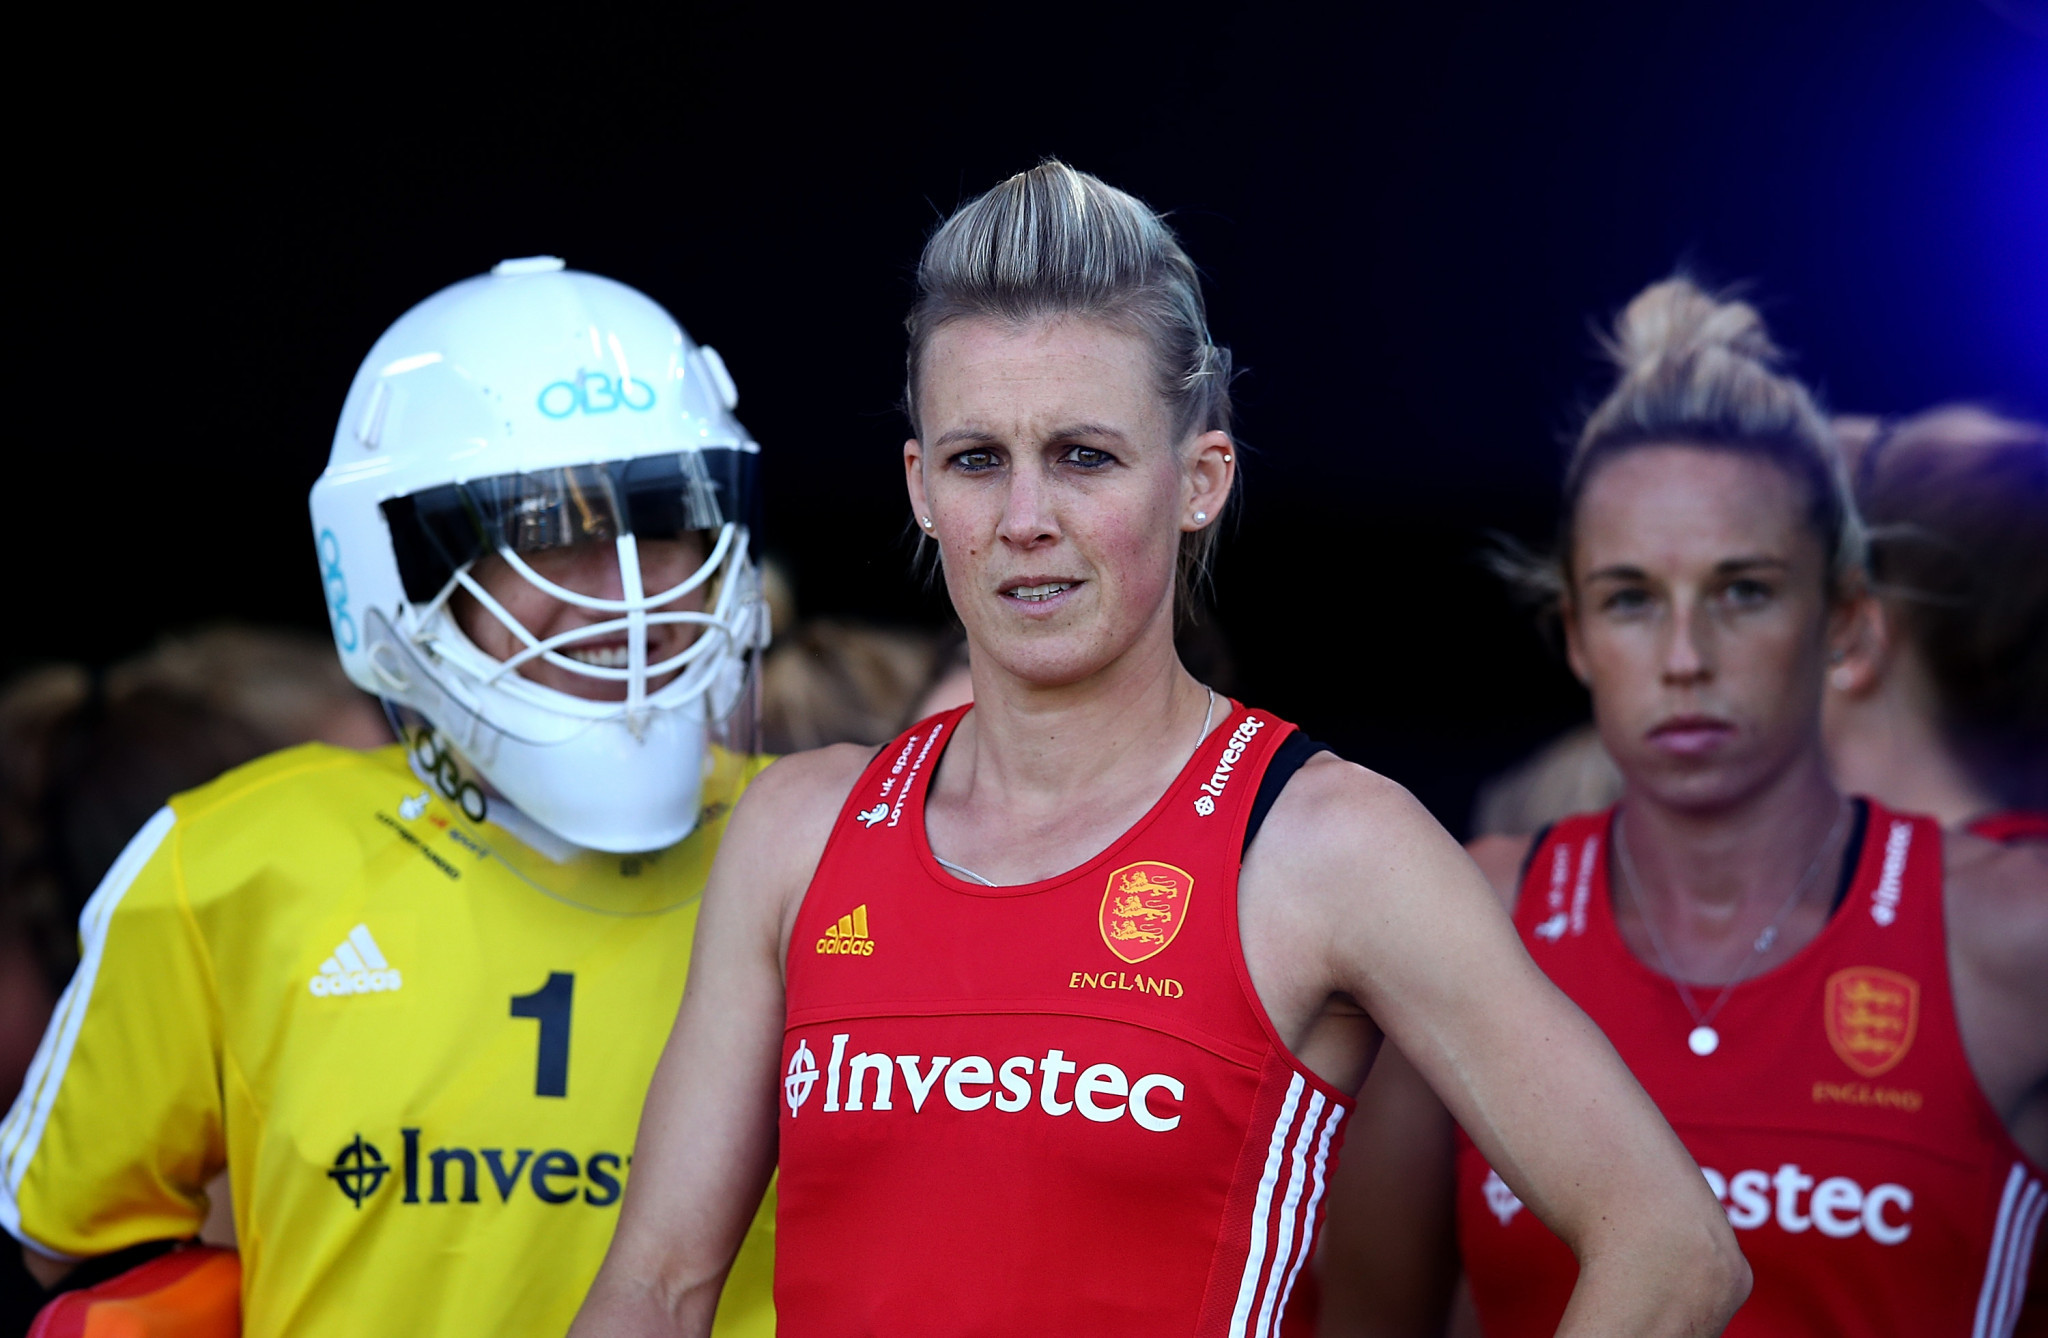 England Hockey mark 50 days to Women's World Cup with role model campaign